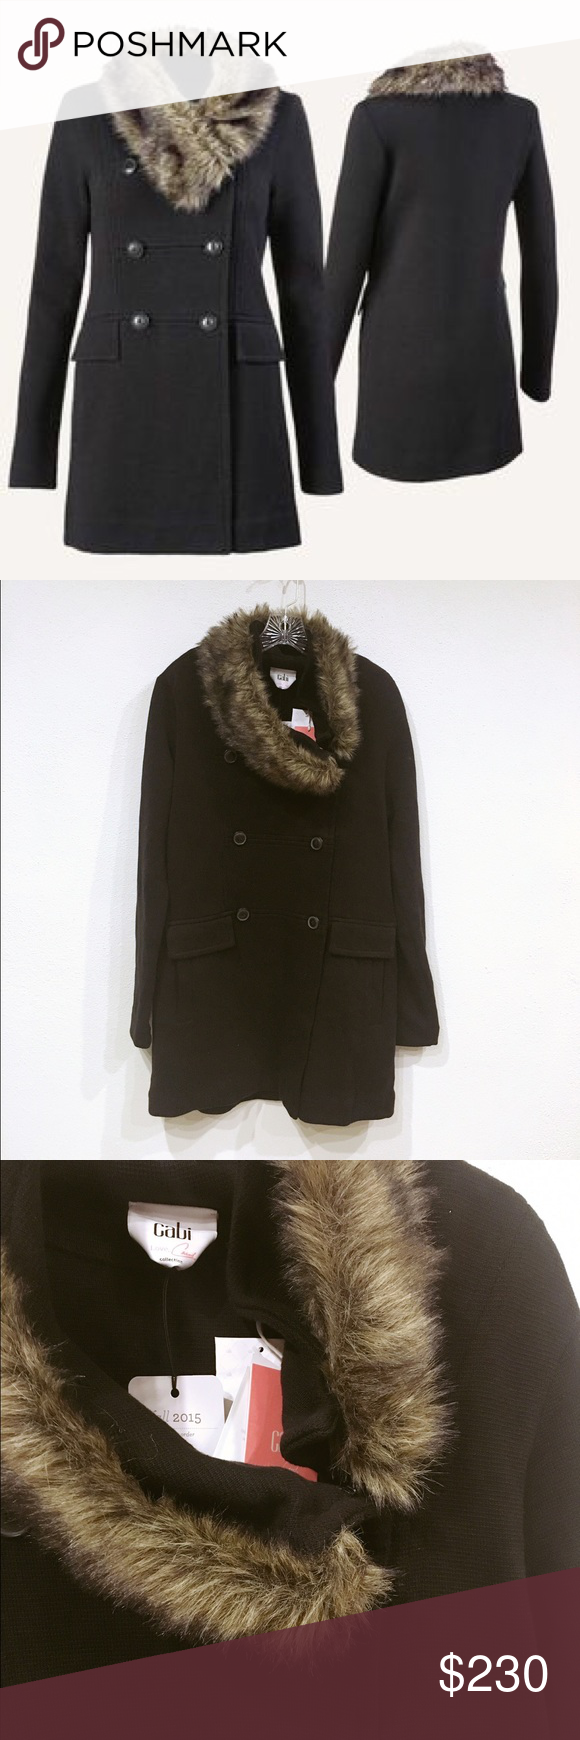 Cabi Manor Coat NWT. Removable fur collar. No trades. 1213 CAbi Jackets & Coats Pea Coats